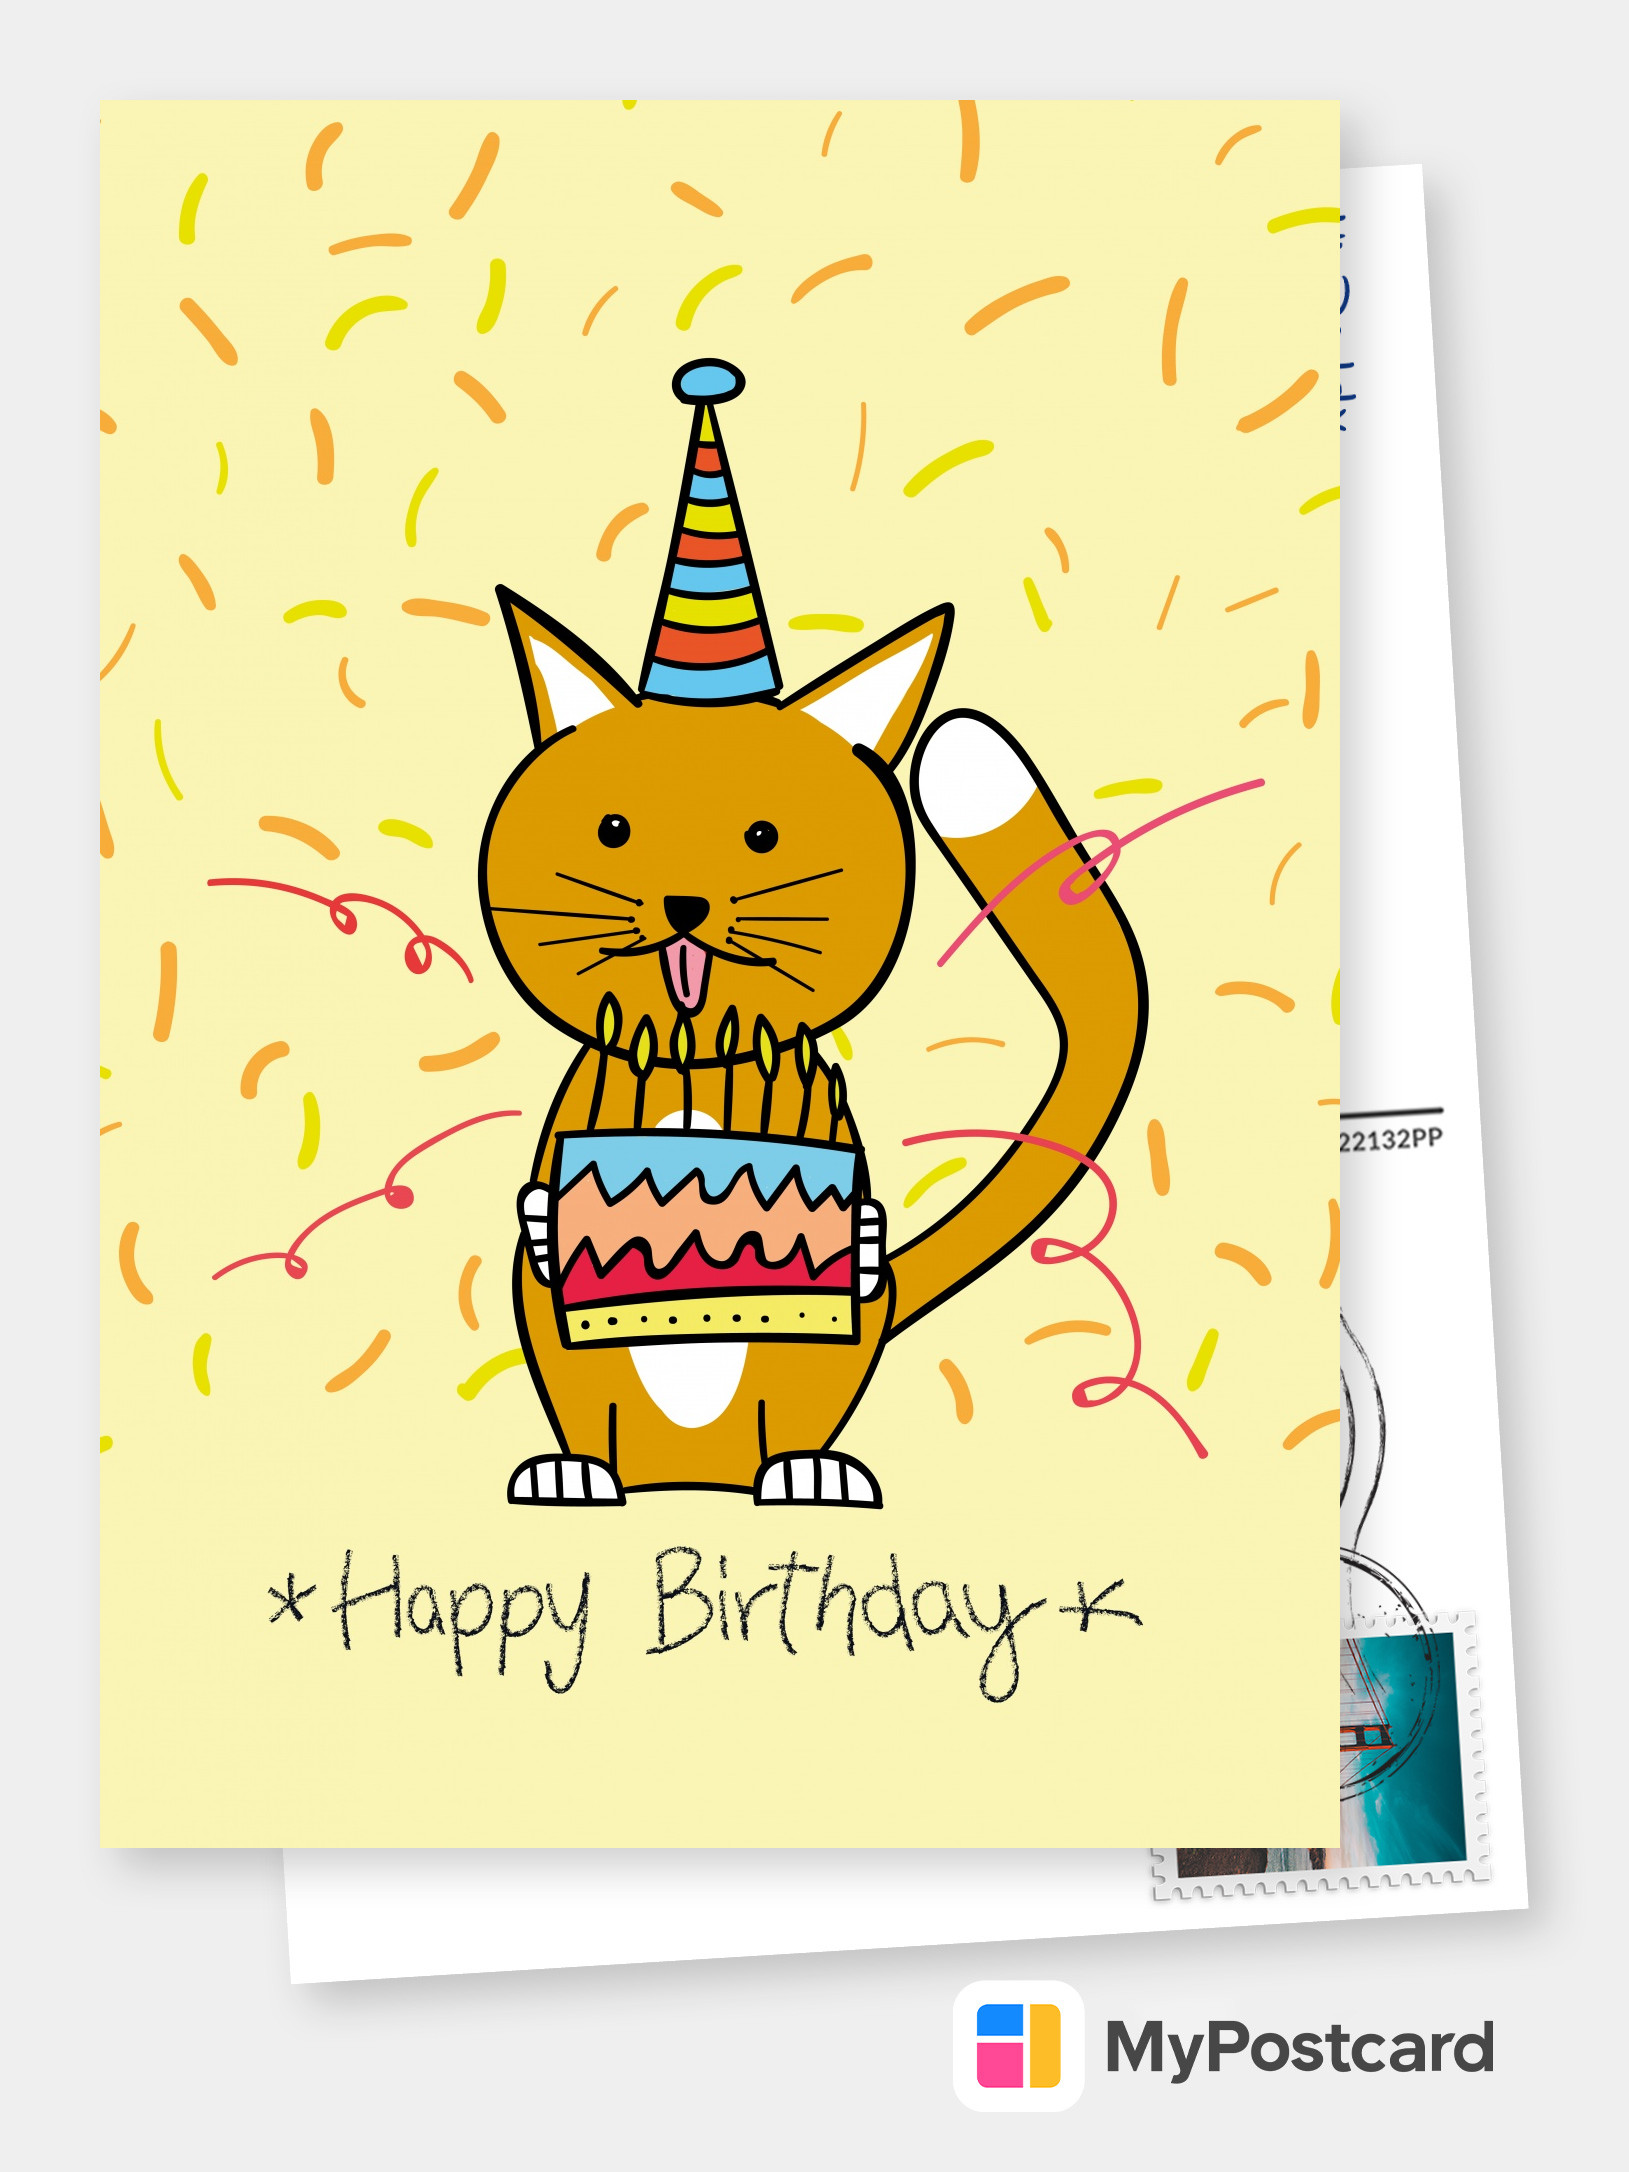 Free Printable Happy Birthday Cards Online Customized Cards Printed Mailed For You International Online Or With Our Free Postcard App Postcard Service